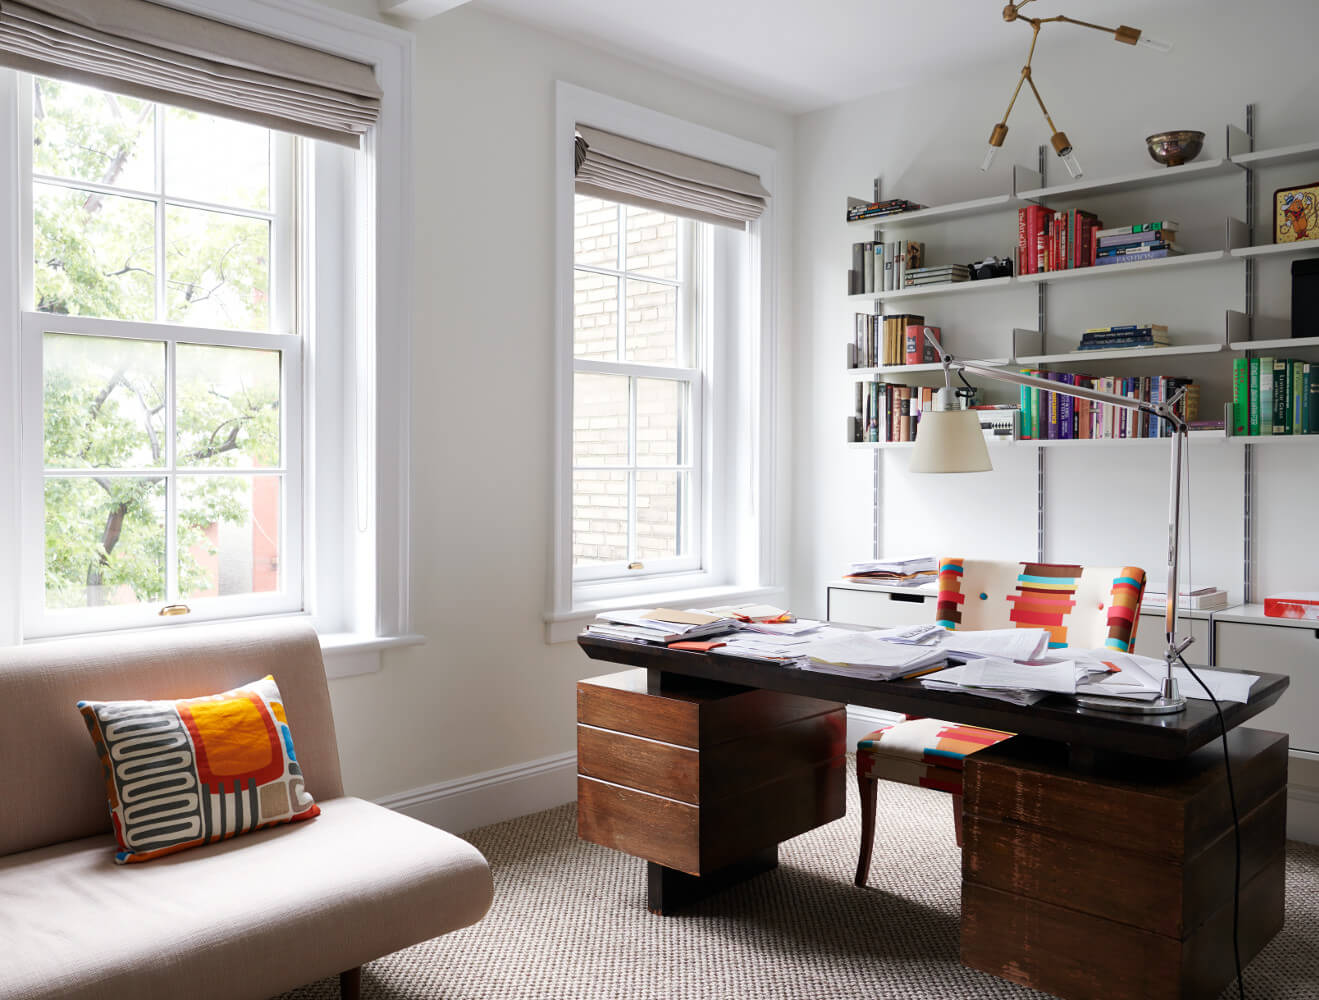 The home office features Vitsoe shelving and a Lindsey Adelman chandelier. Another fine renovation by Delson or Sherman Architects.